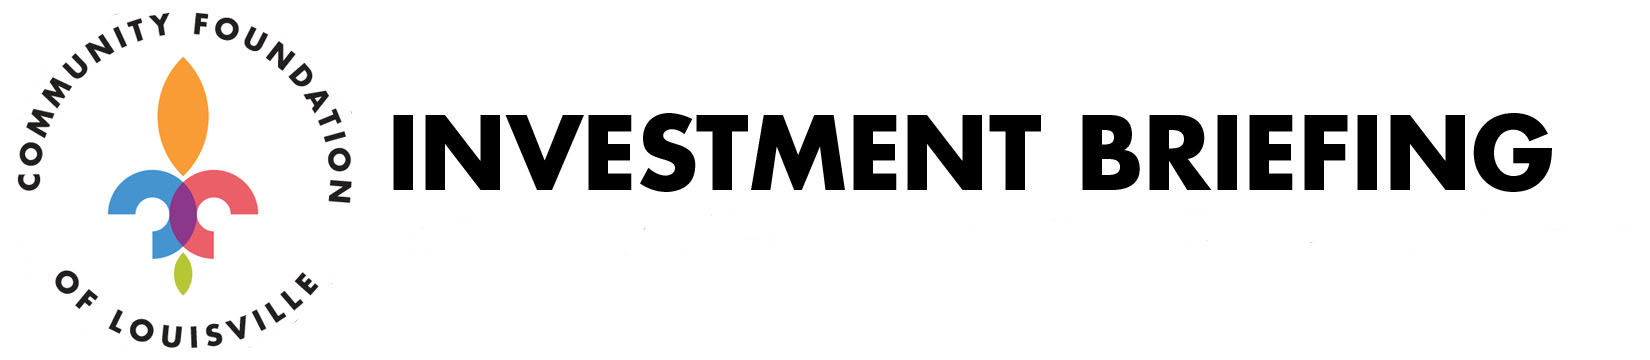 Investment Briefing Logo